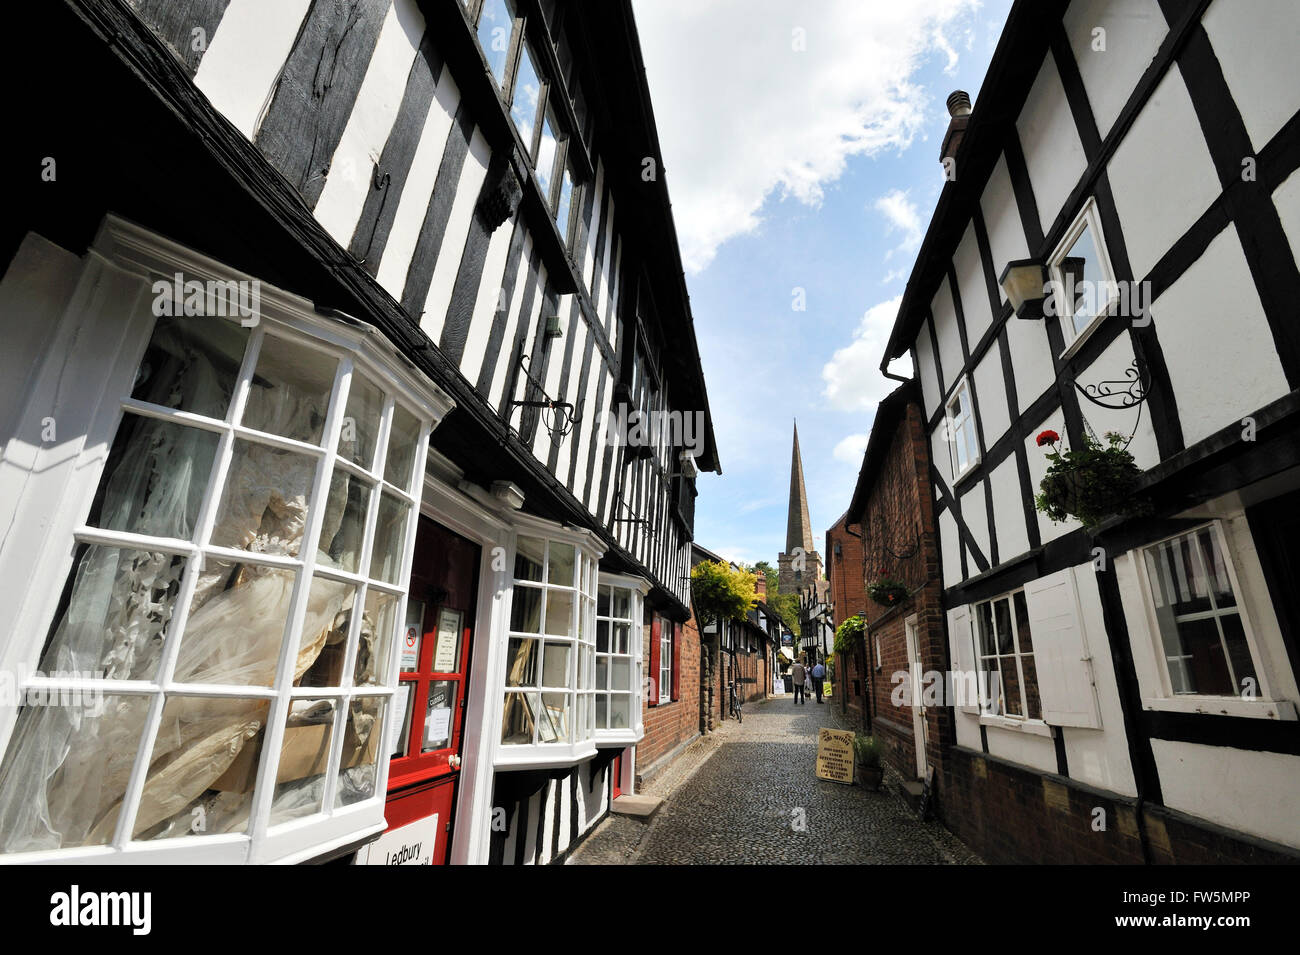 Church Lane, Ledbury, Herefordshire. One of England's text book market towns, full of prime examples of black - Stock Image